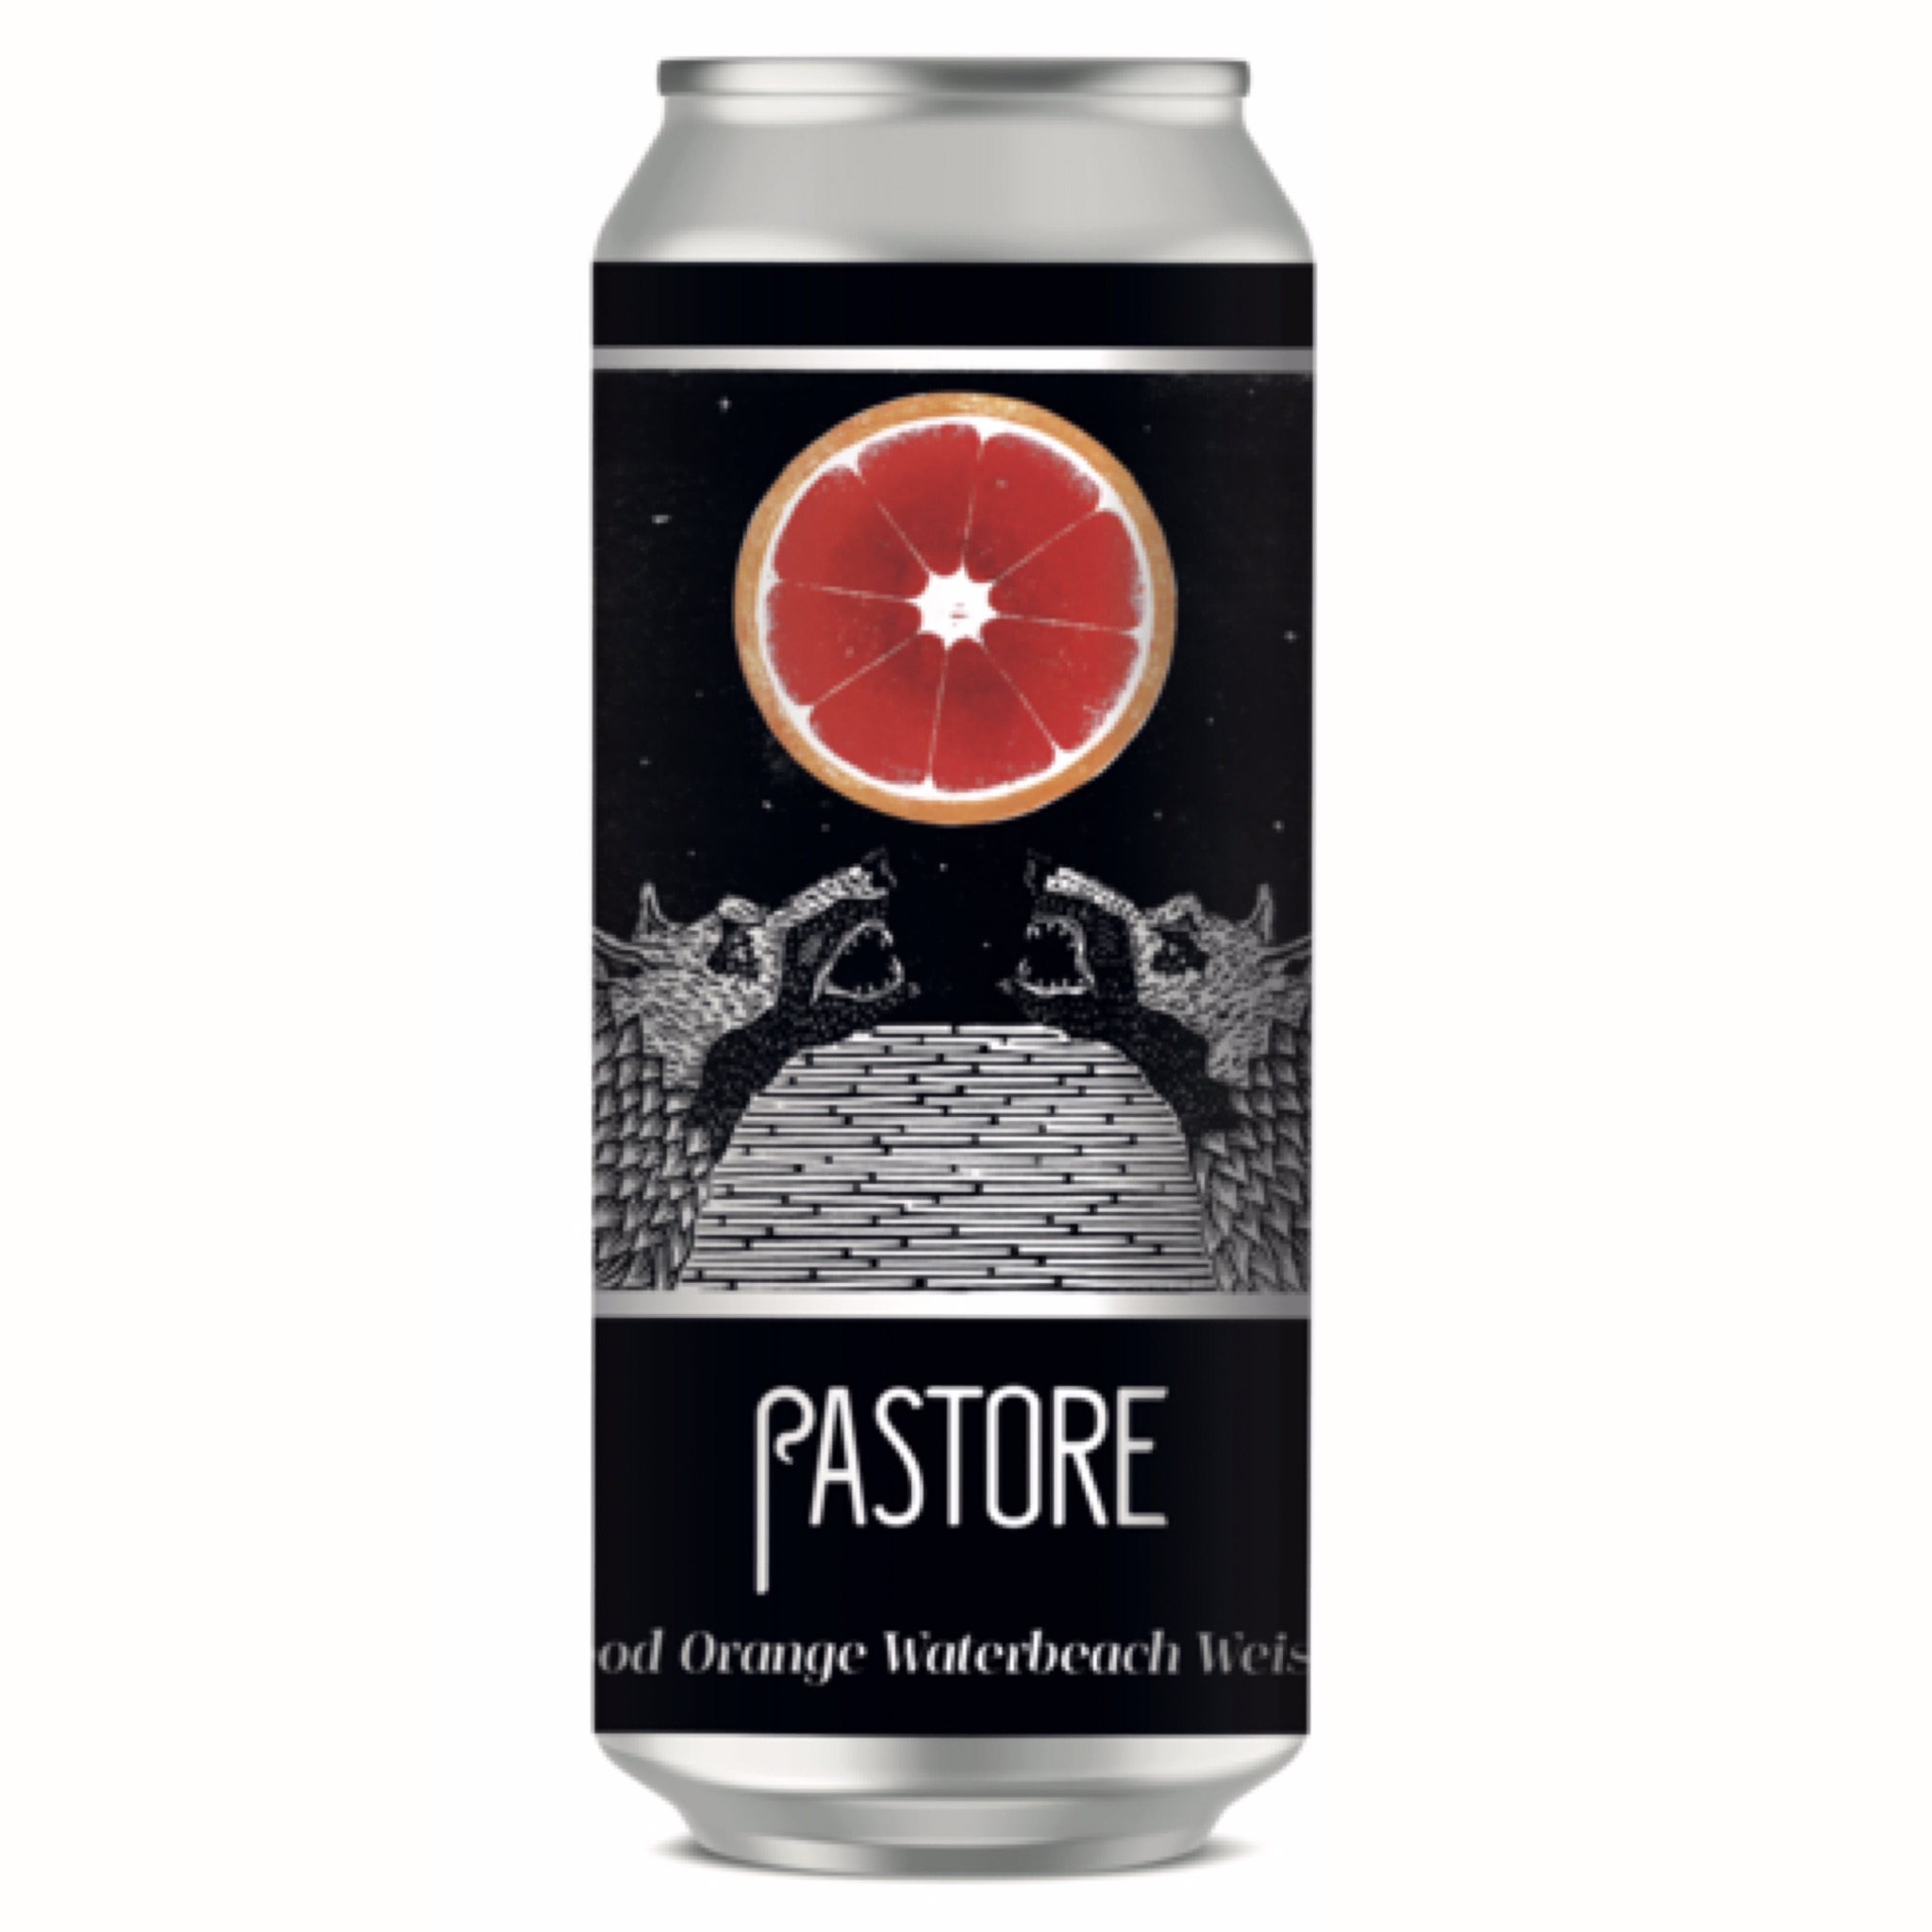 Blood Orange Waterbeach Weisse 3.8% 440ml Pastore Brewing & Blending